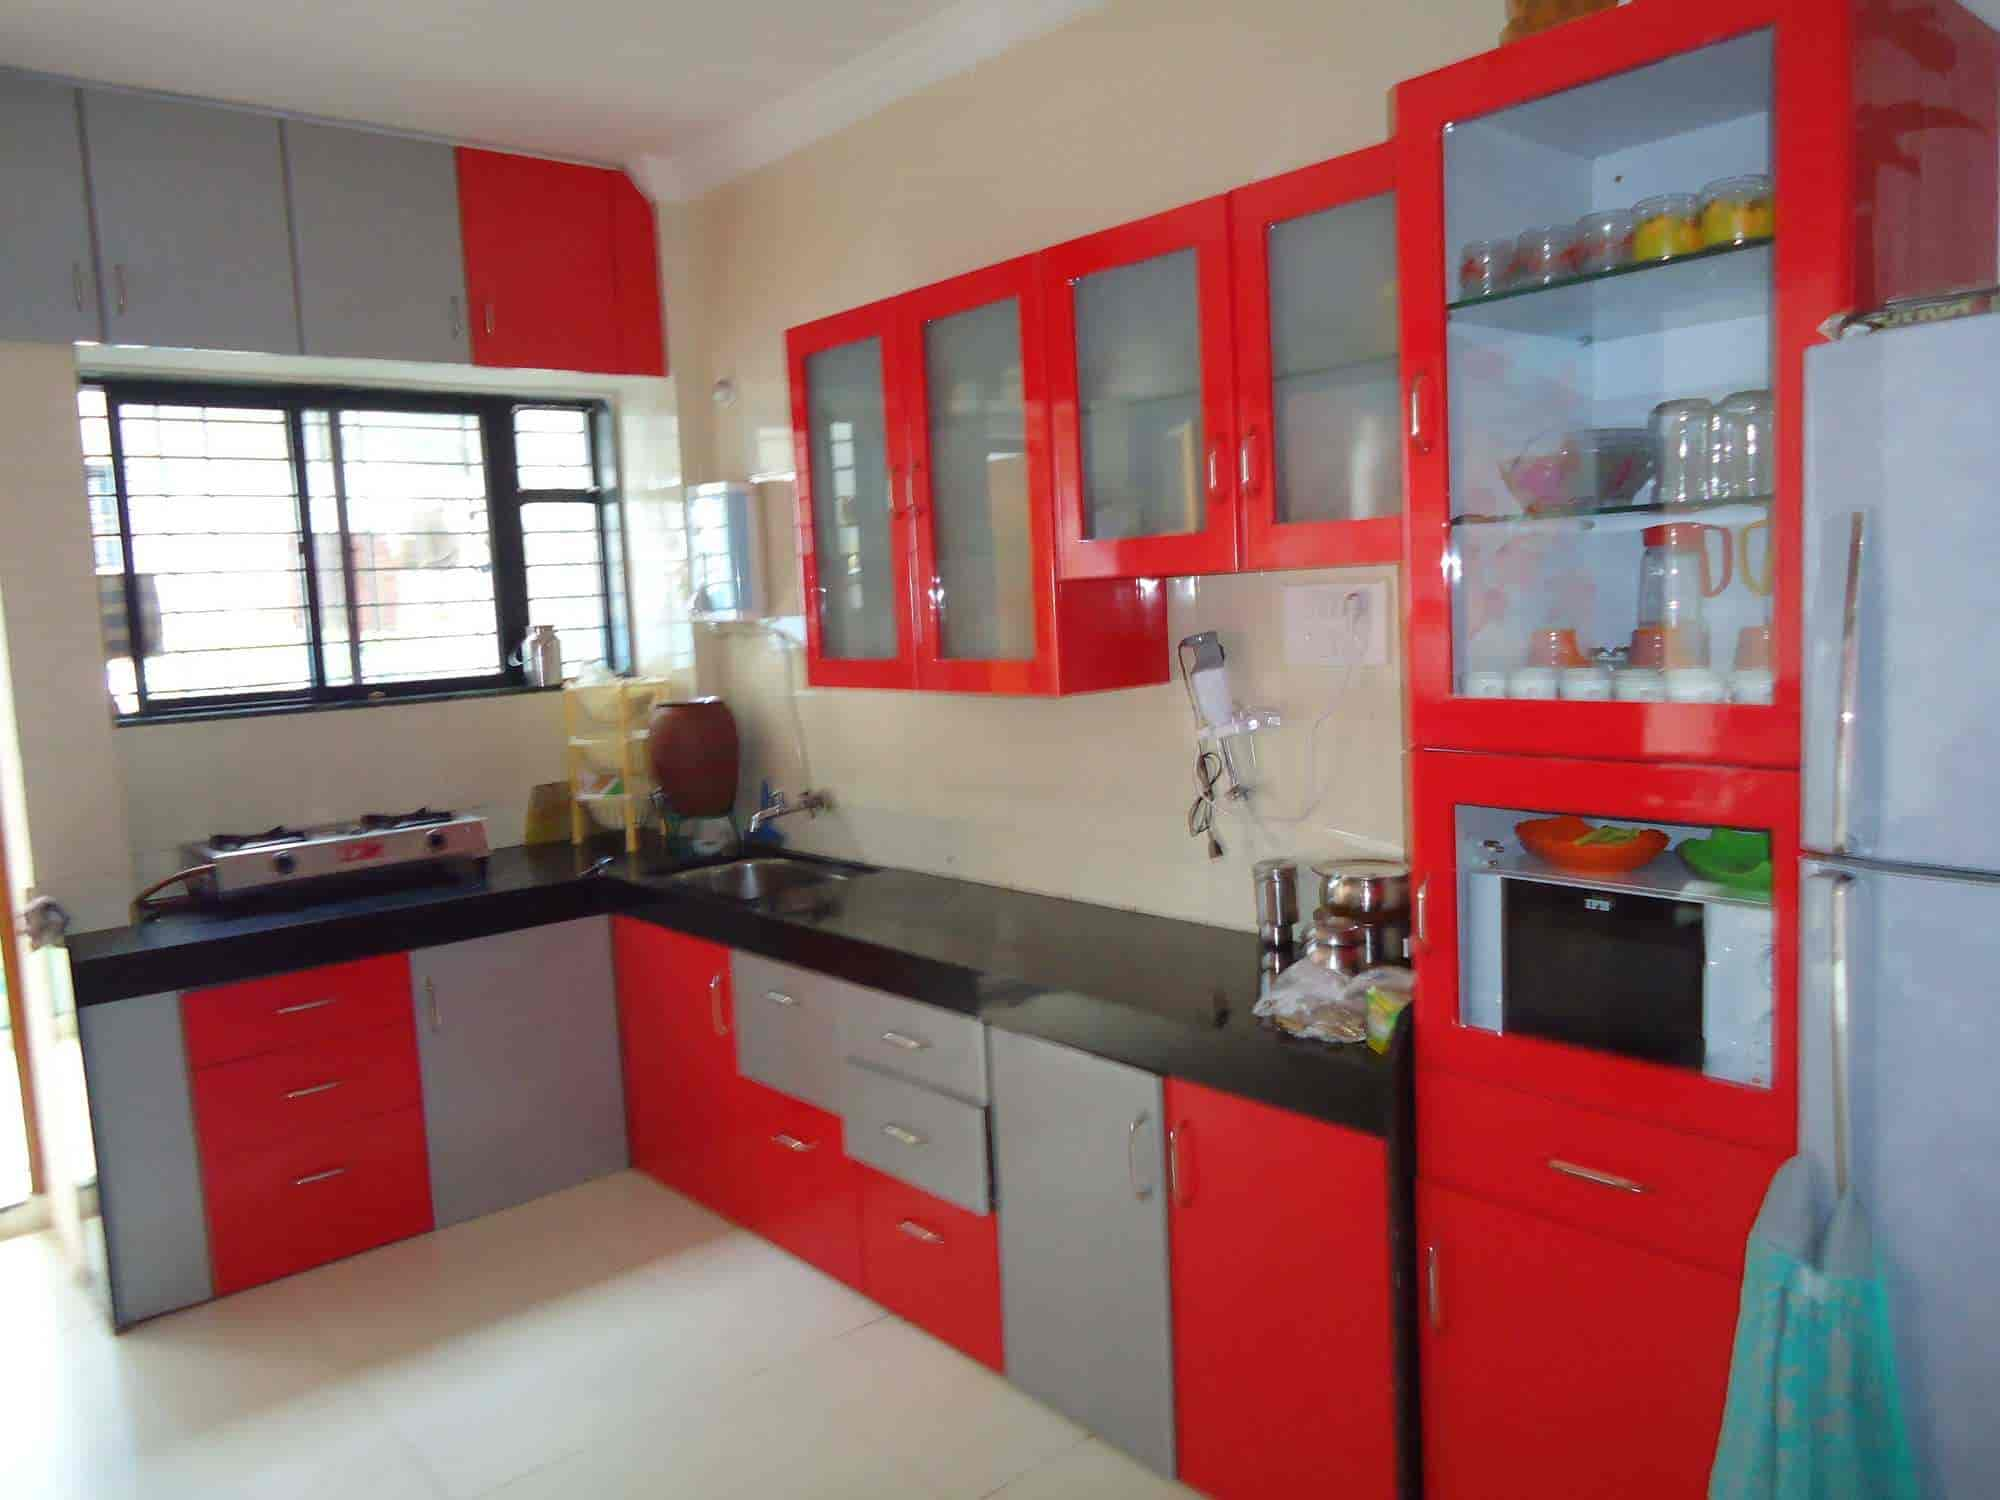 kitchen furniture images. Mona Furniture And Kitchen Trolley, Warje - \u0026 Trolley Dealers In Pune Justdial Images